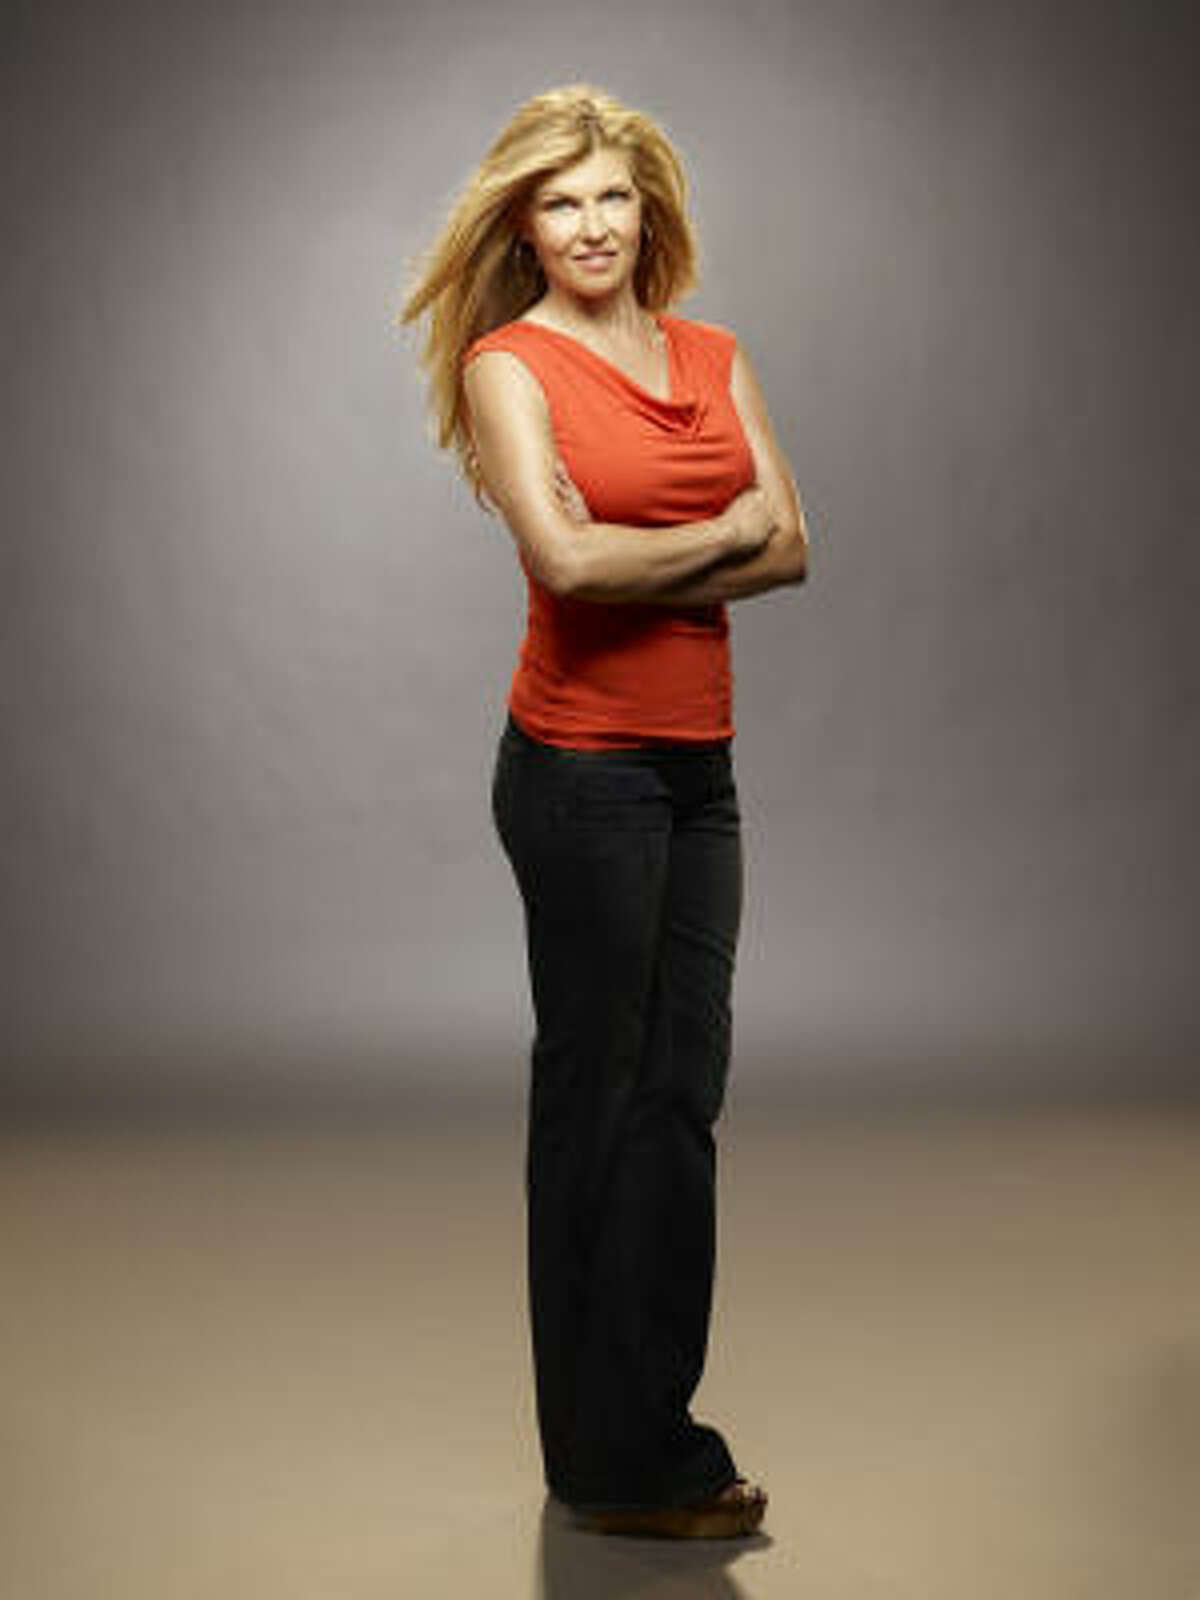 Voters should reward Connie Britton for her work as Sharon Gaines on Friday Night Lights.